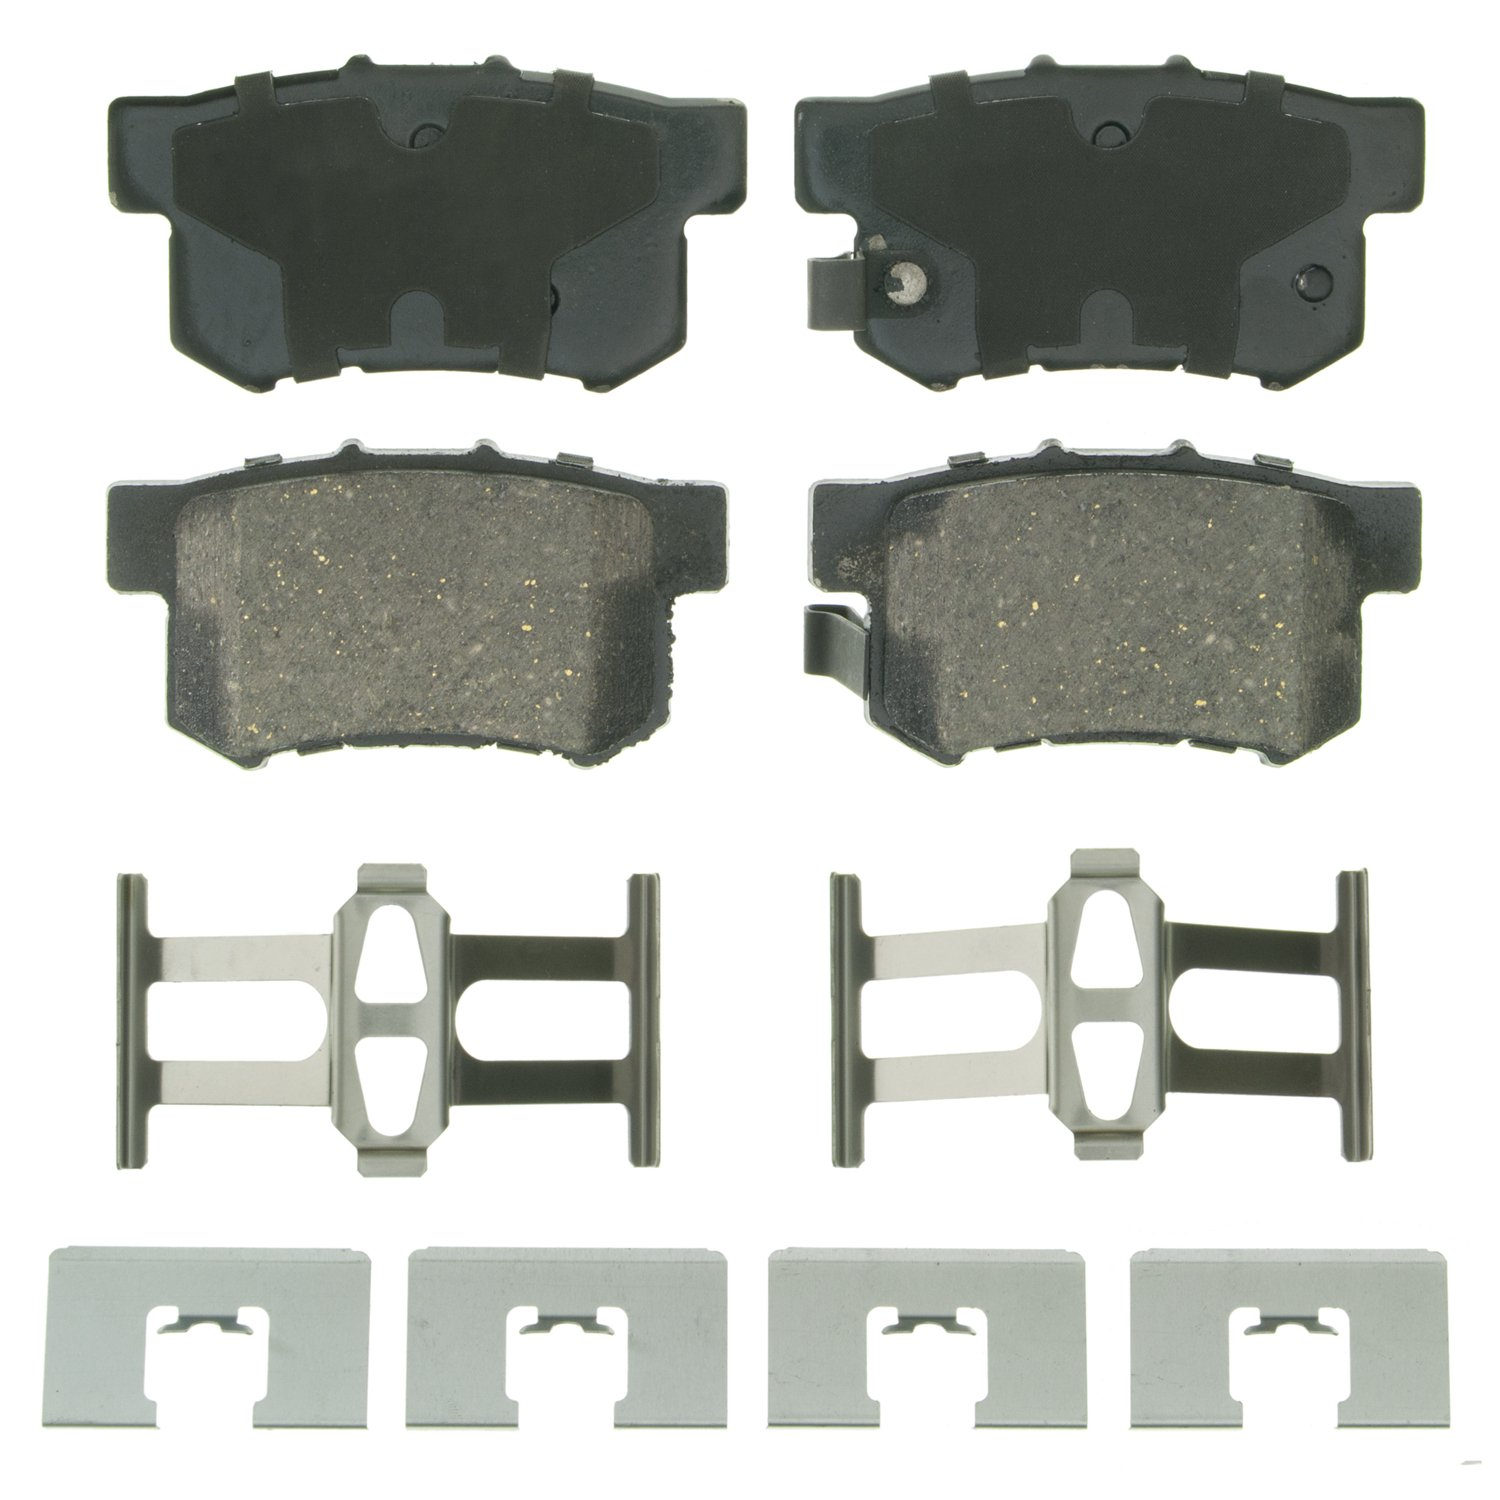 Wagner QuickStop ZD536 Ceramic Disc Pad Set Includes Pad Installation Hardware, Rear